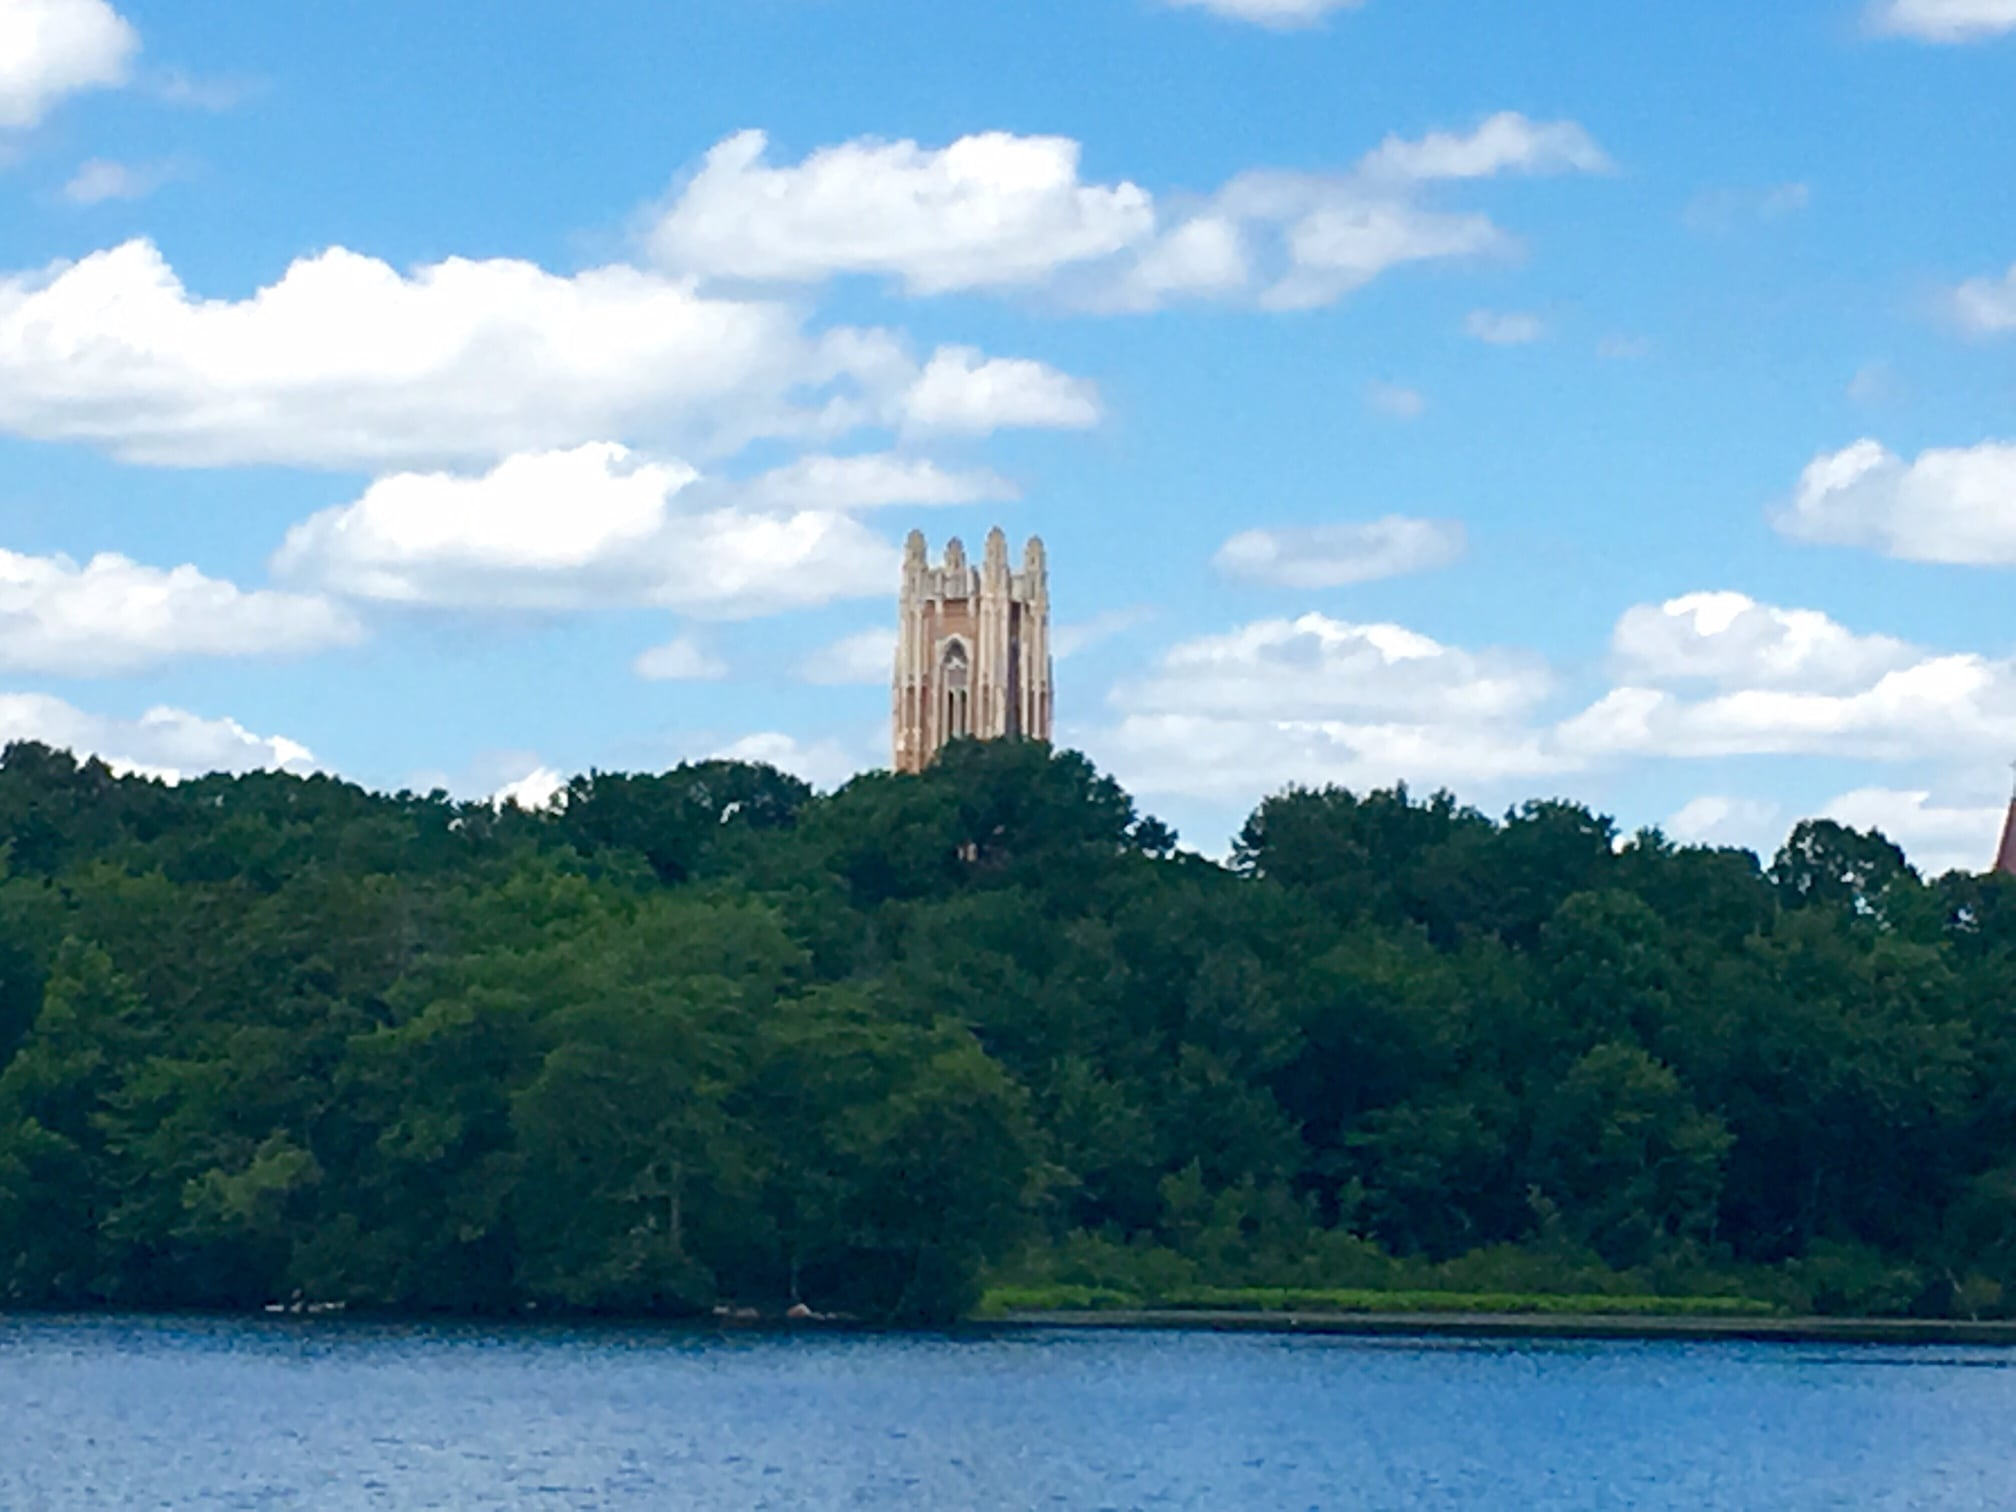 Wellesley College, Galen Tower, Summer 2016